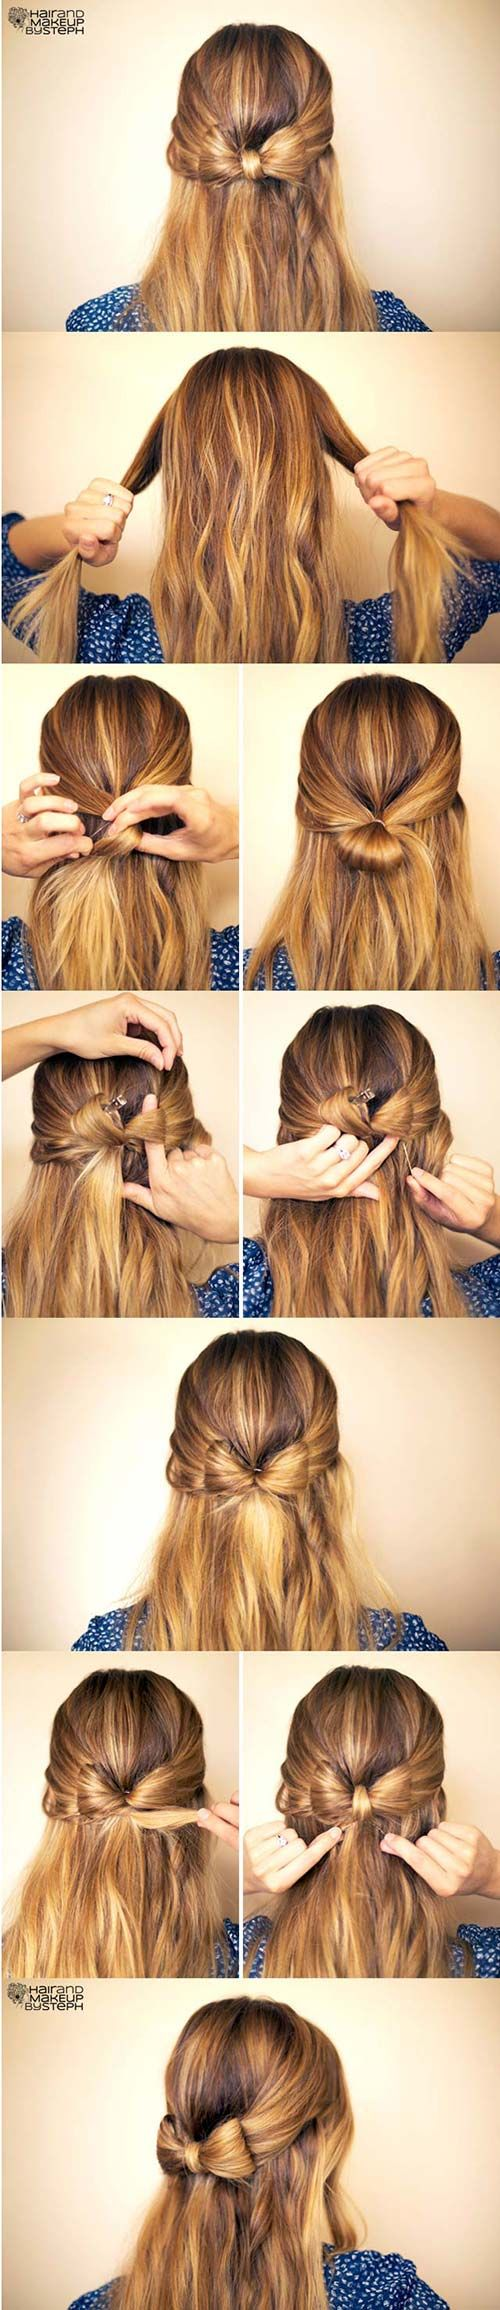 8 Great Hairstyles For Girls Longhair Hairstyles